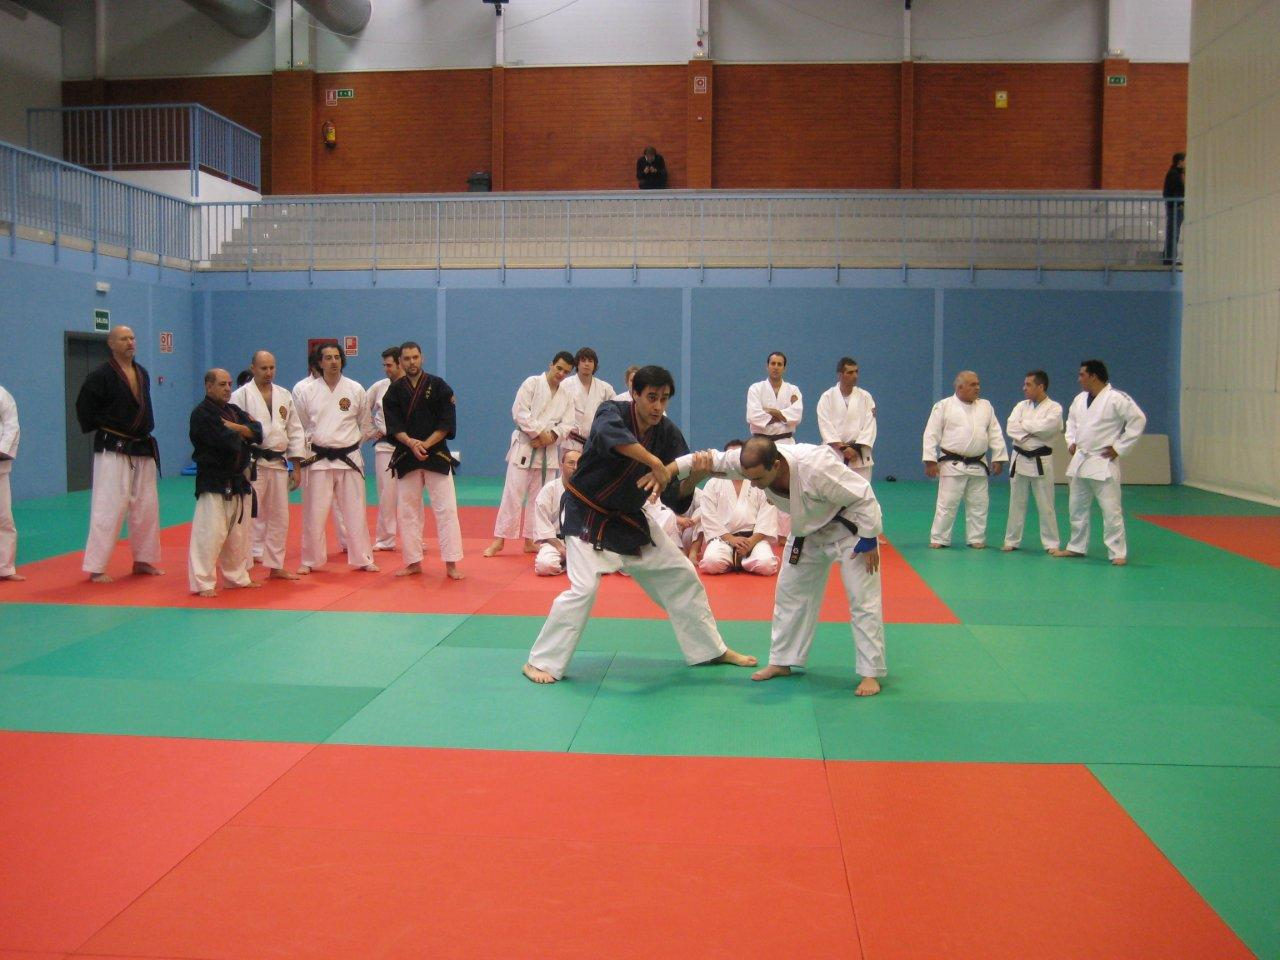 MADRID CURSO-INTERNACIONAL 2010 - 1